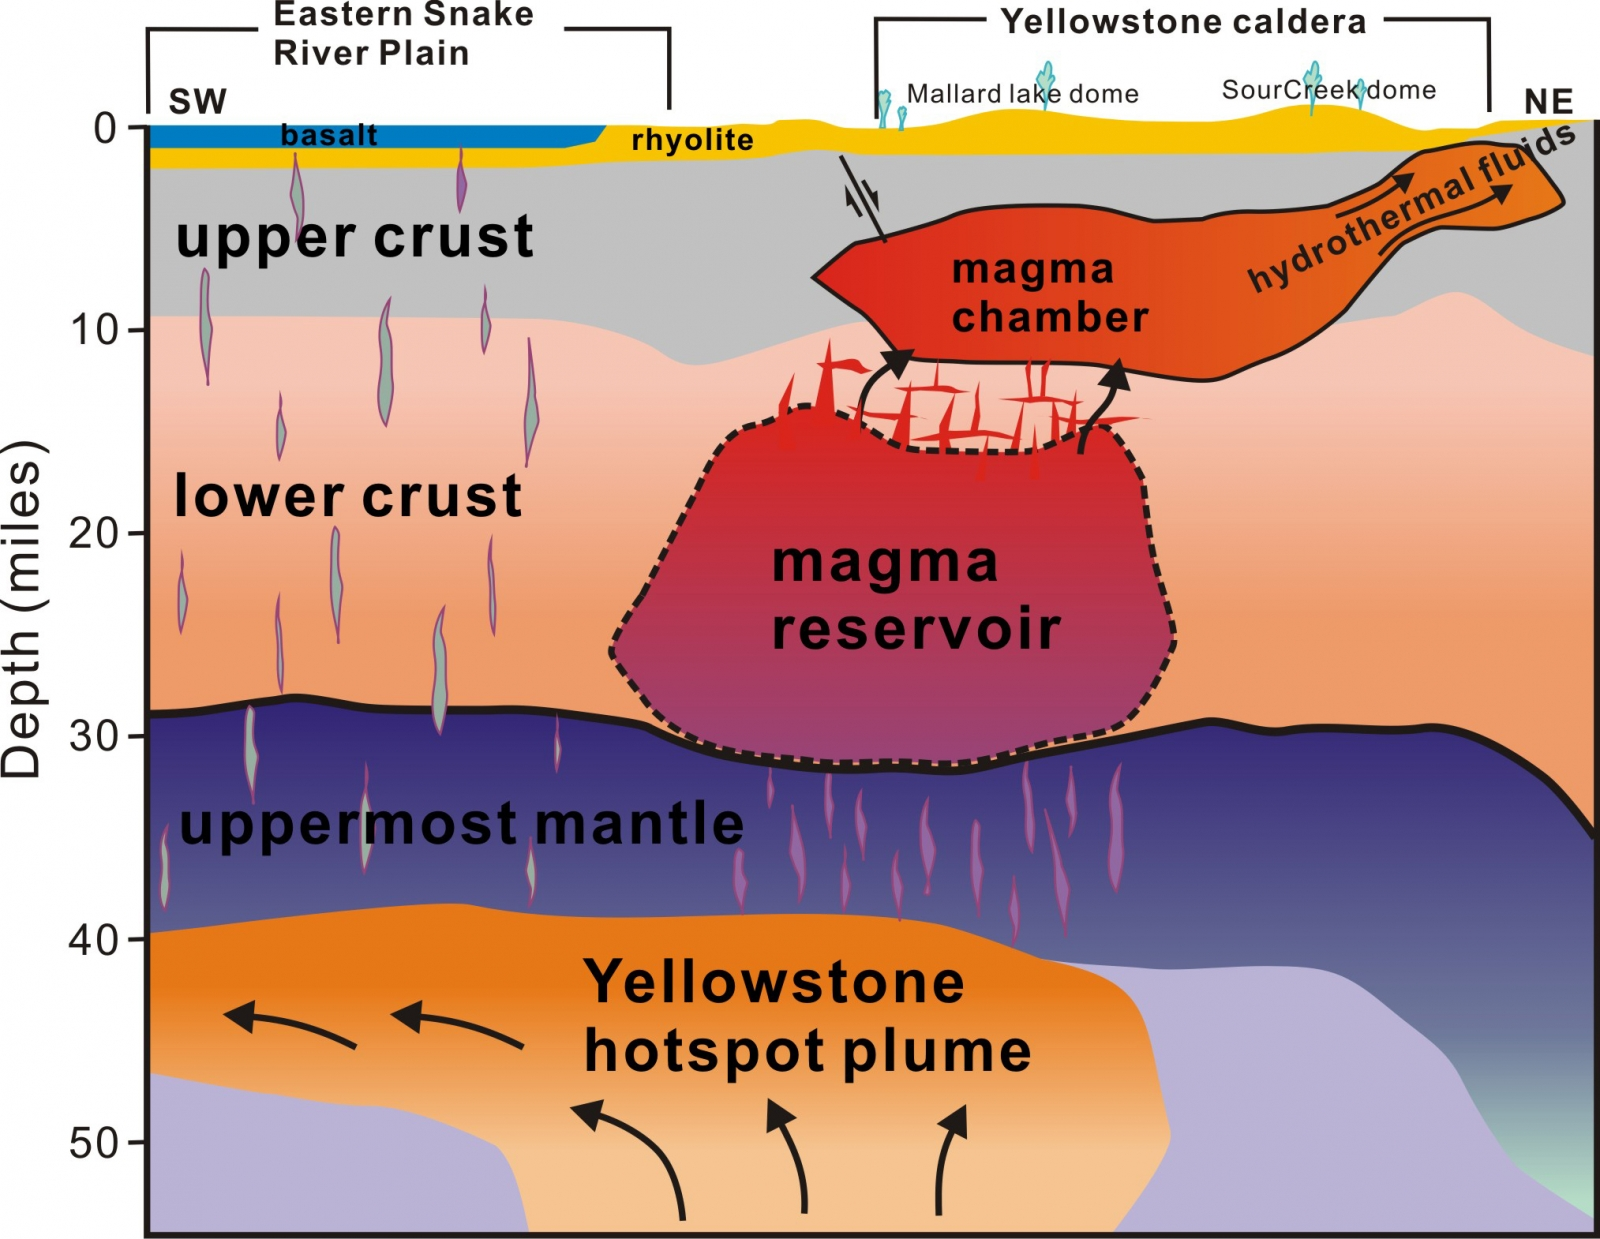 Yellowstone supervolcano: Facts we learned about the active volcano in 2015